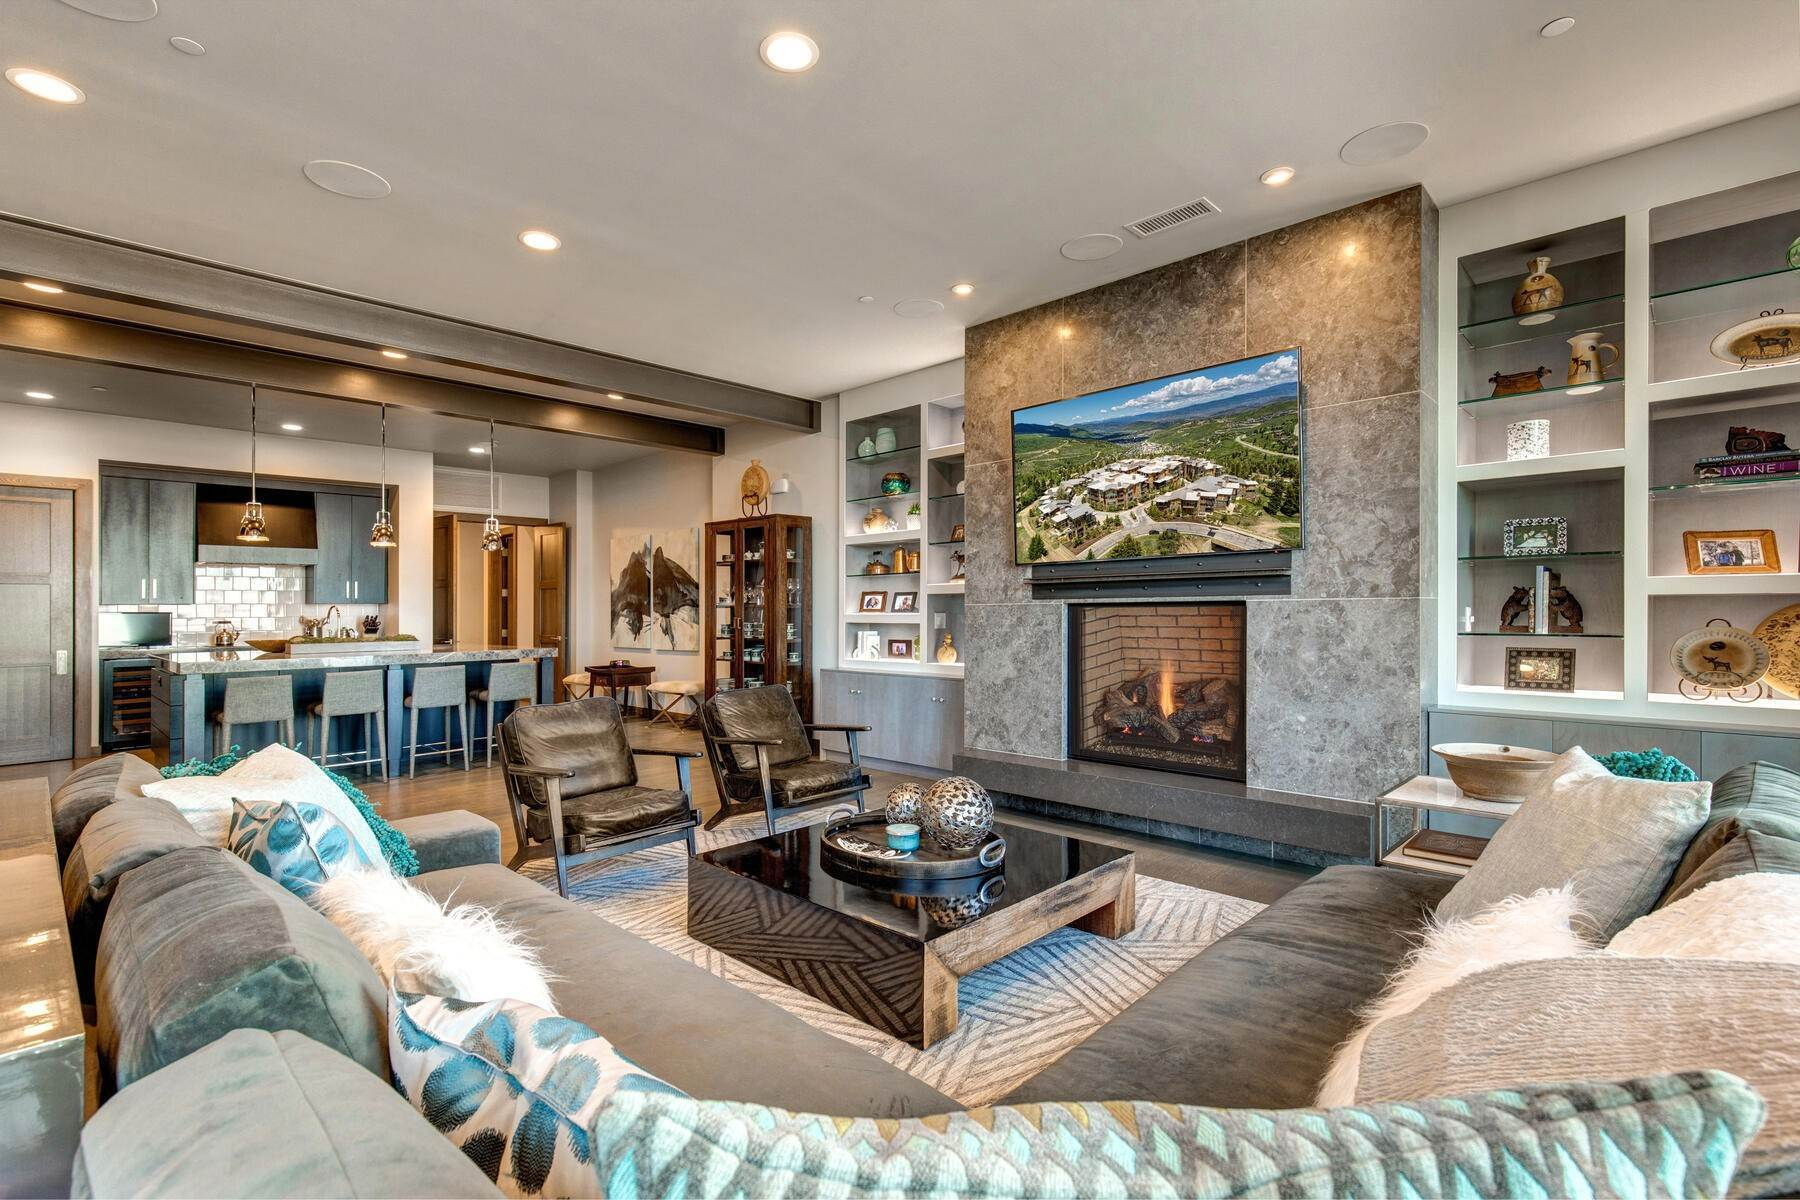 5. Condominiums for Sale at Ski-In Ski-Out Alpine Luxury Living at Stein Eriksen Residences 6702 Stein Circle #131 Park City, Utah 84060 United States